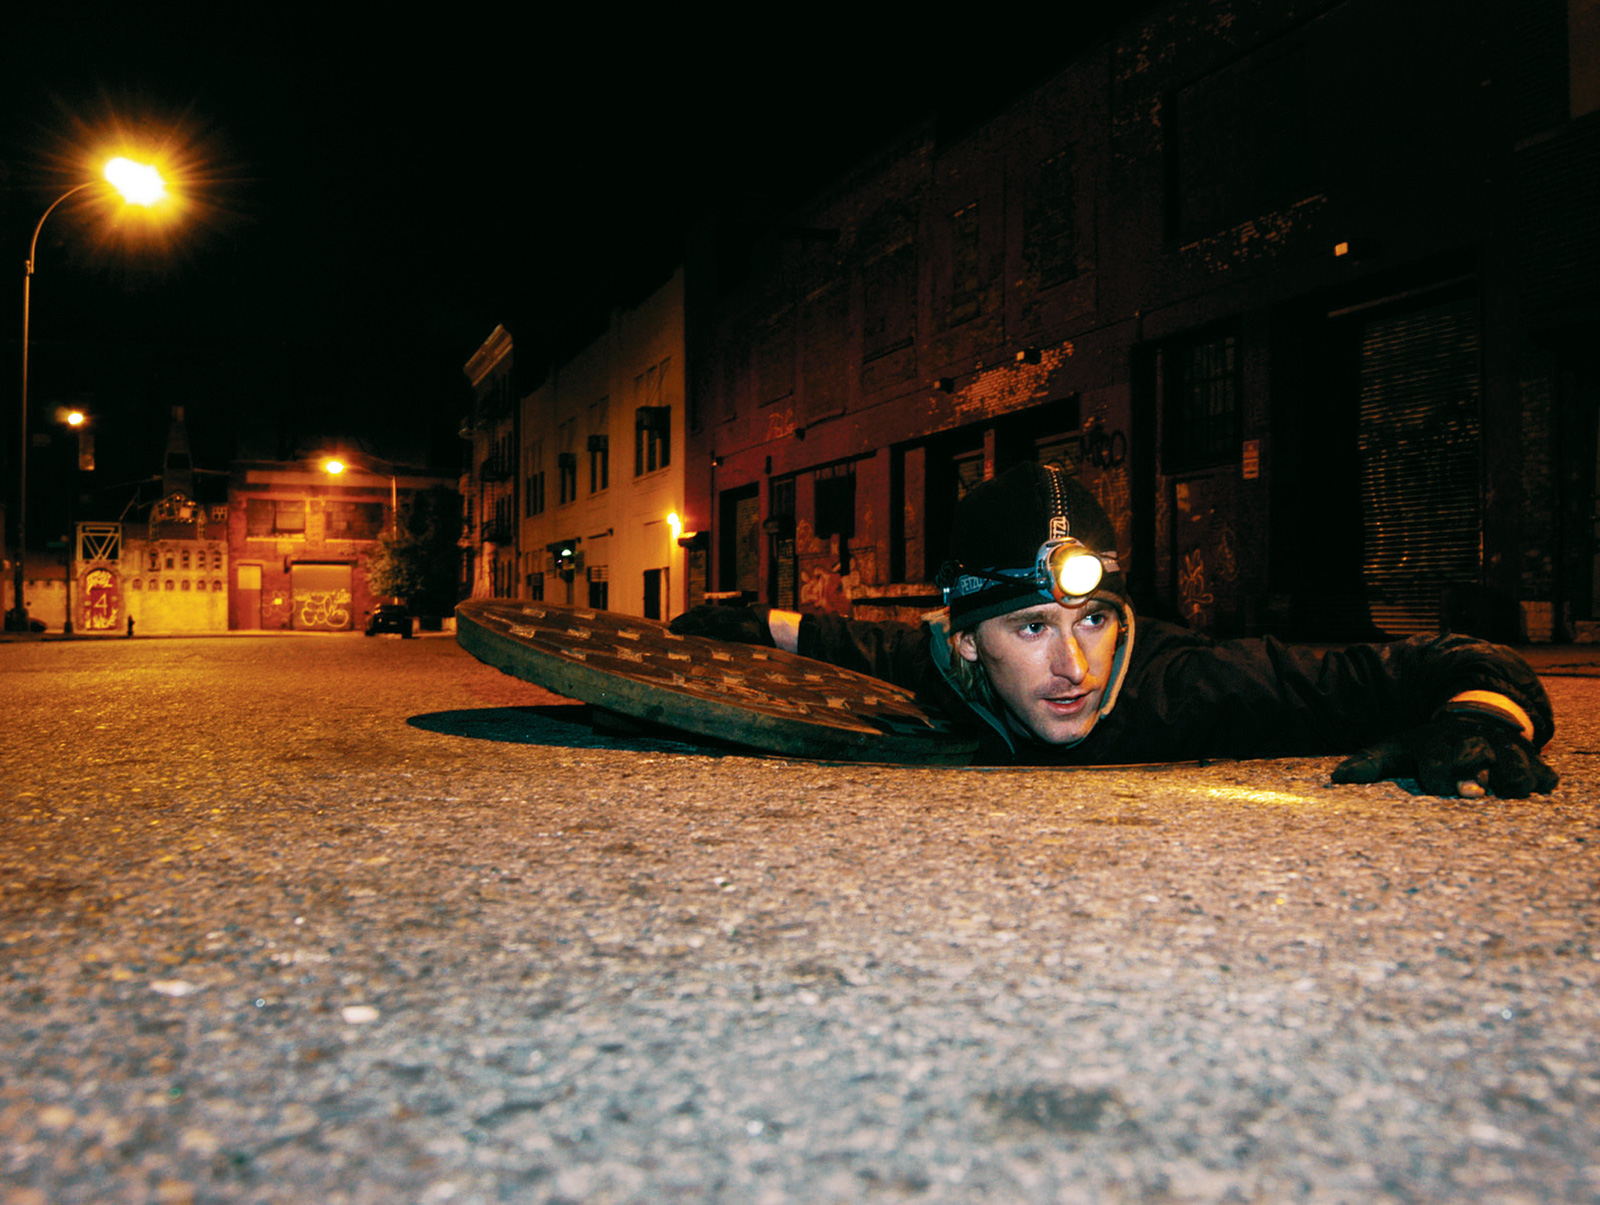 Photographer Steve Duncan crawling out of a man hole